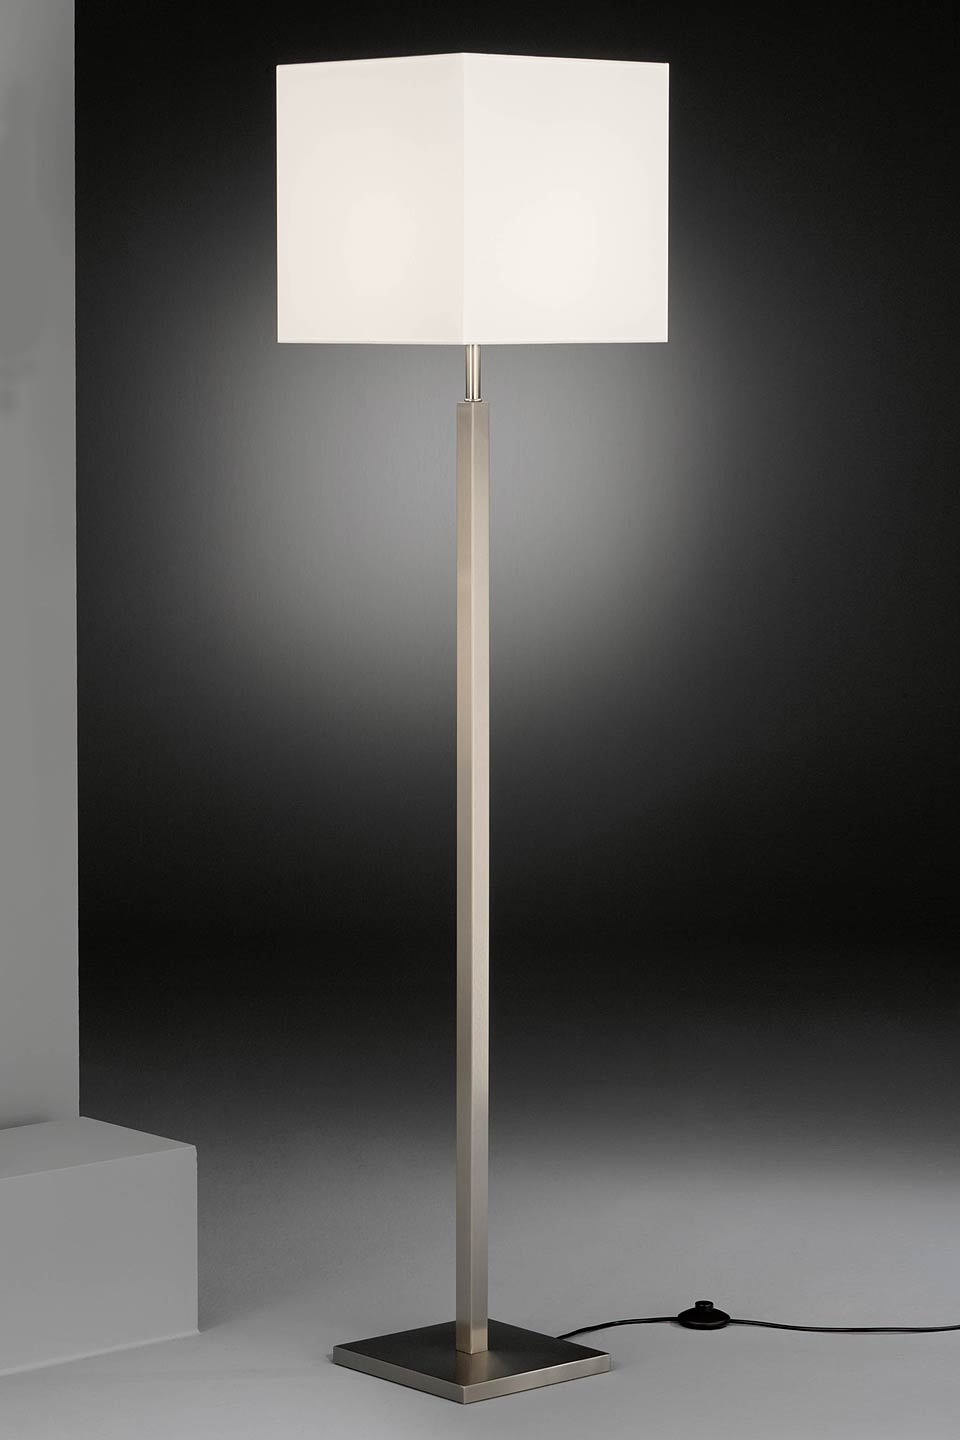 Square nickel plated floor lamp with white chintz lampshade. Baulmann Leuchten.